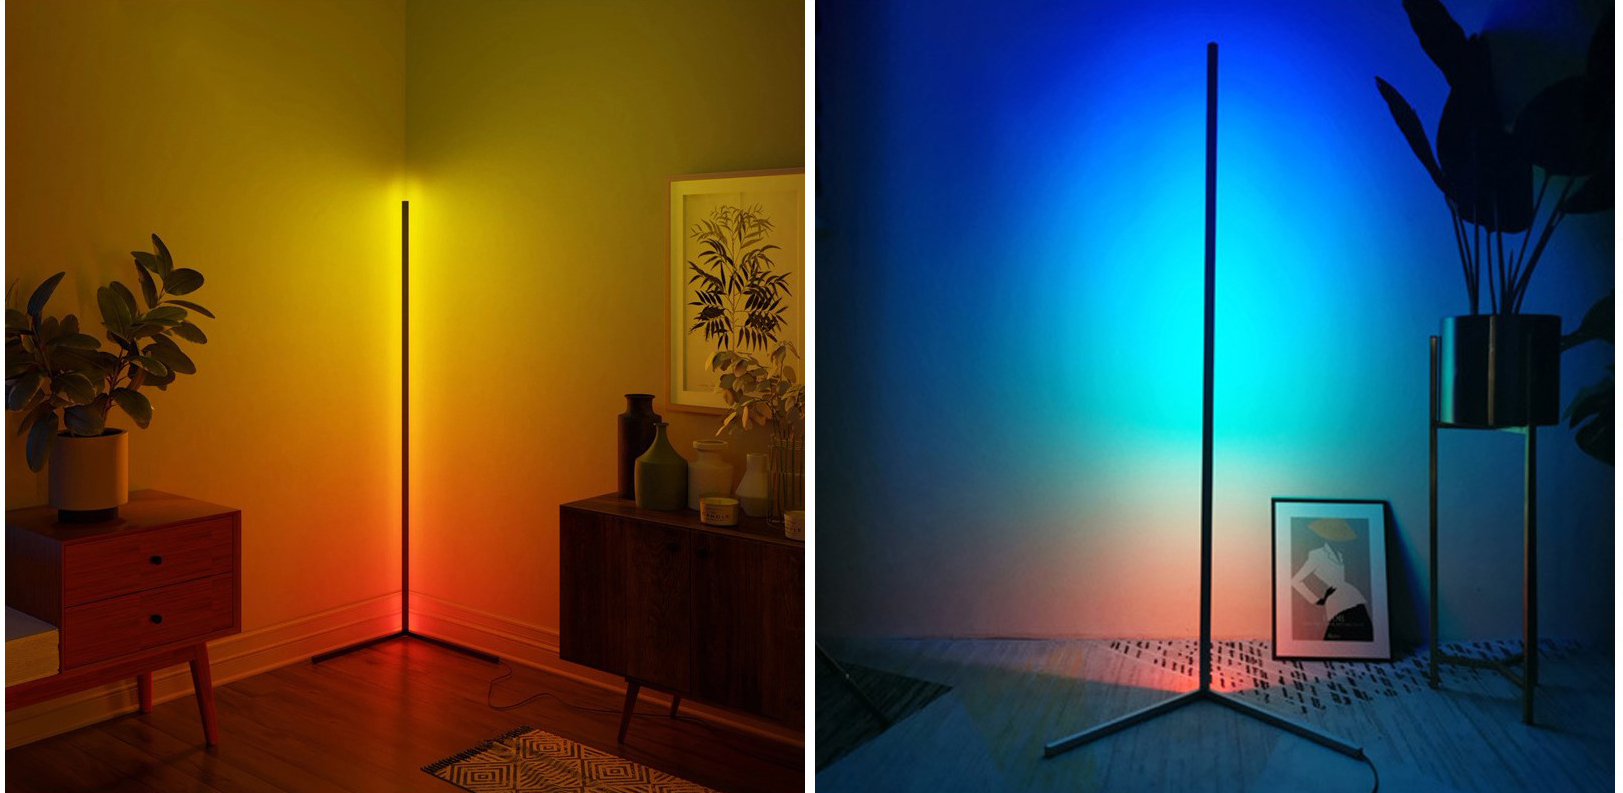 New Product Release-RGB Floor Light to Make Home Decoration Colorful